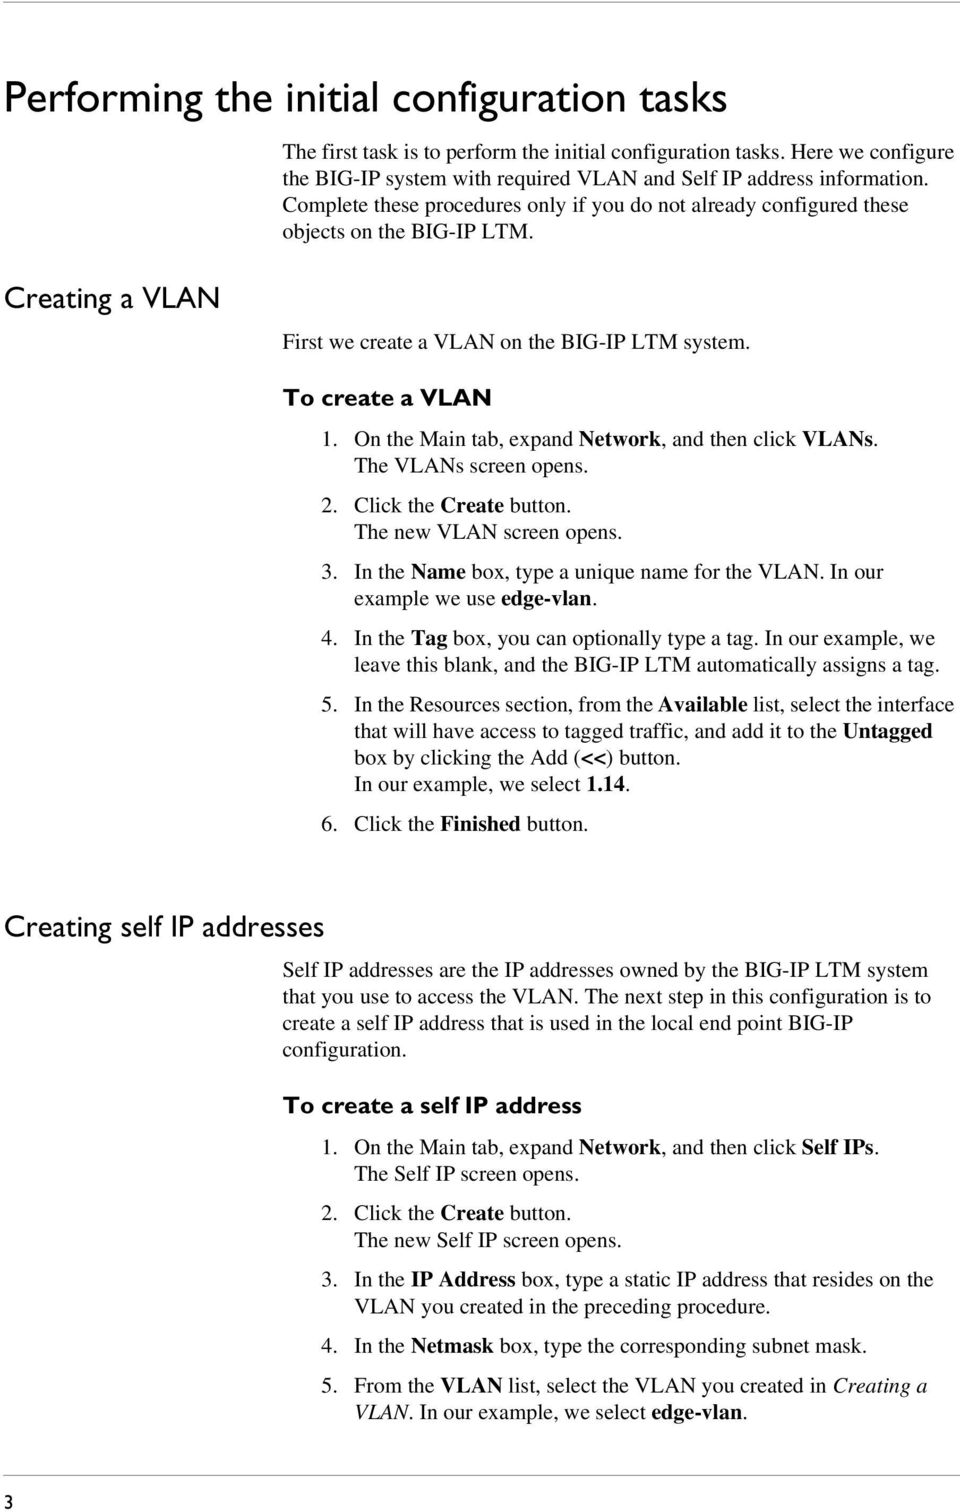 On the Main tab, expand Network, and then click VLANs. The VLANs screen opens. 2. Click the Create button. The new VLAN screen opens. 3. In the Name box, type a unique name for the VLAN.